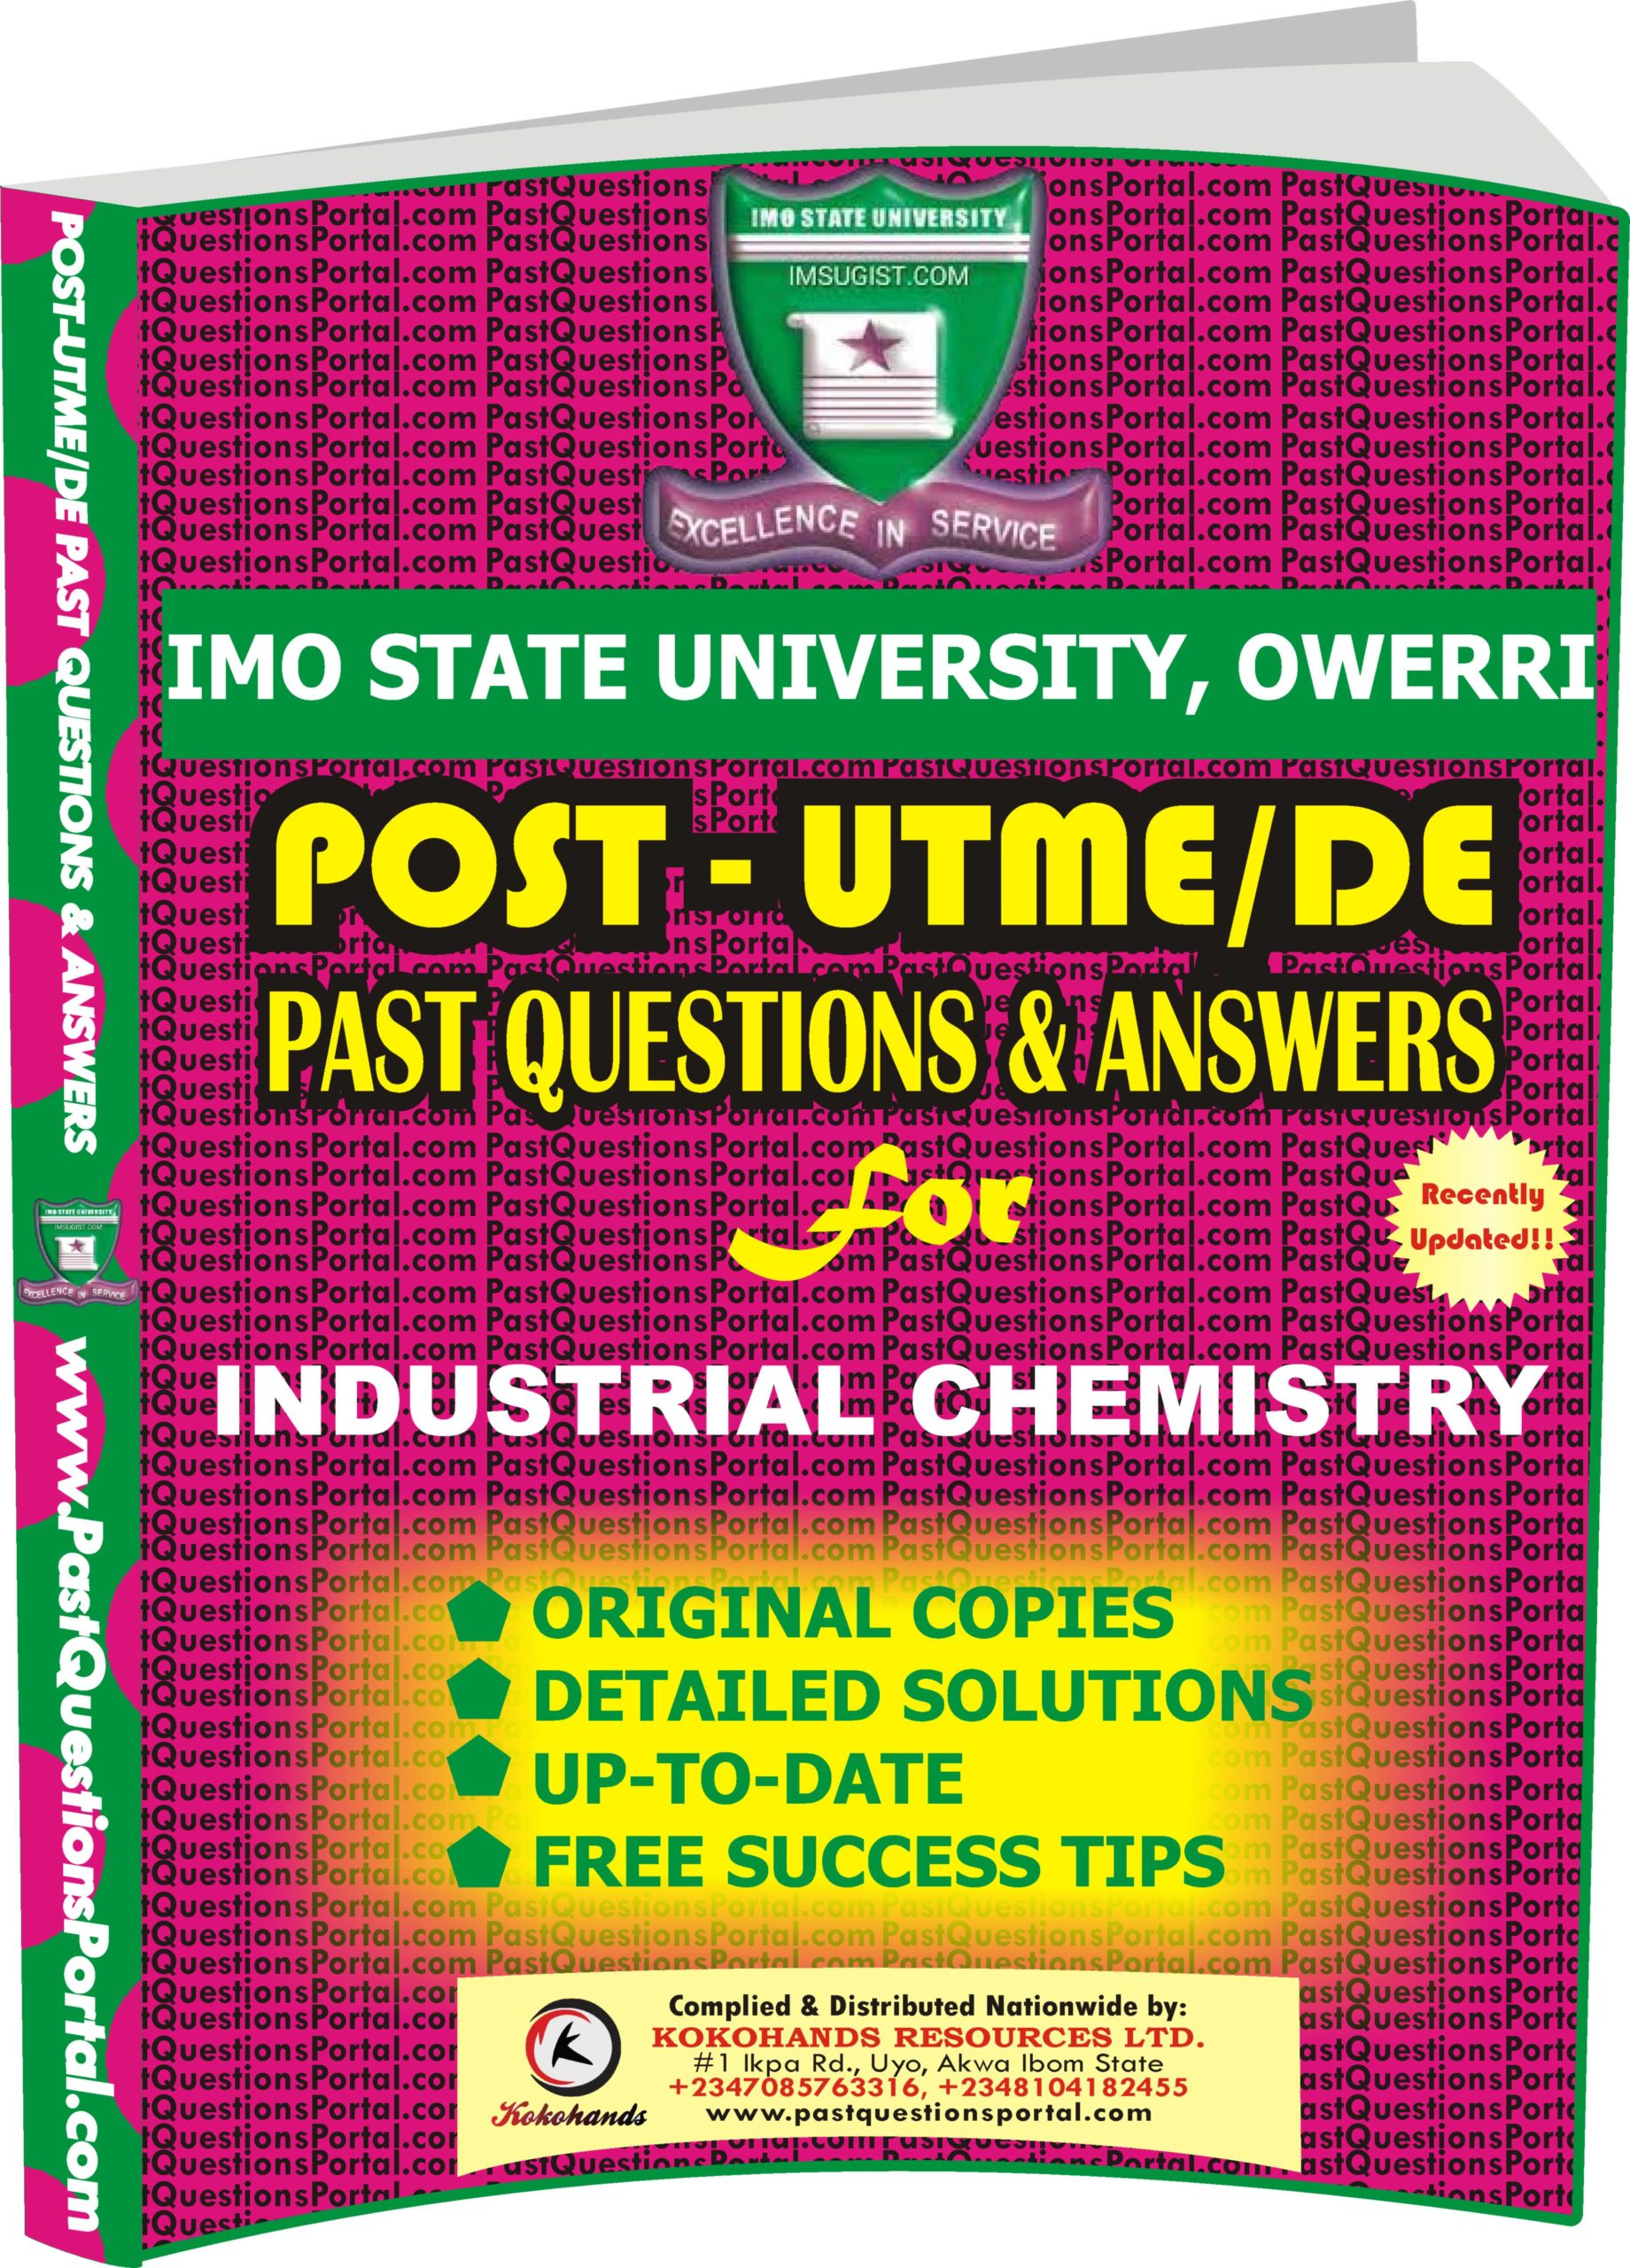 IMSU Post UTME Past Questions for INDUSTRIAL CHEMISTRY